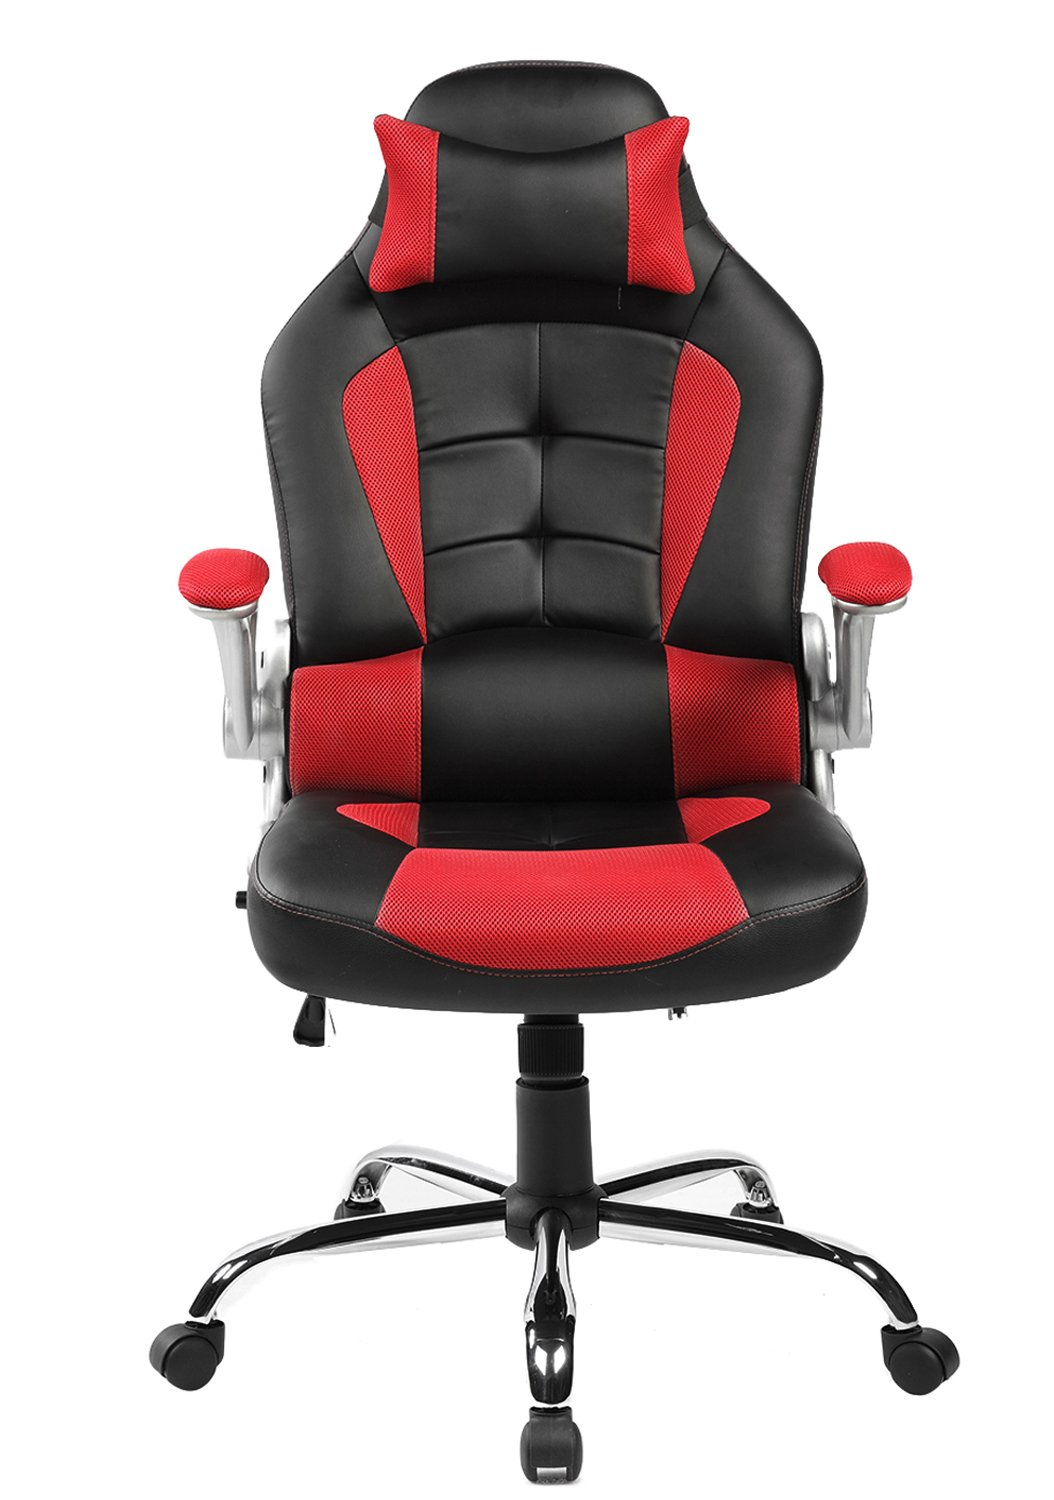 office reclining chair. Amazon.com: Merax King Series High-back Ergonomic Pu Leather Office Chair Racing Style Swivel Computer Desk Lumbar Support Napping (Red): Reclining